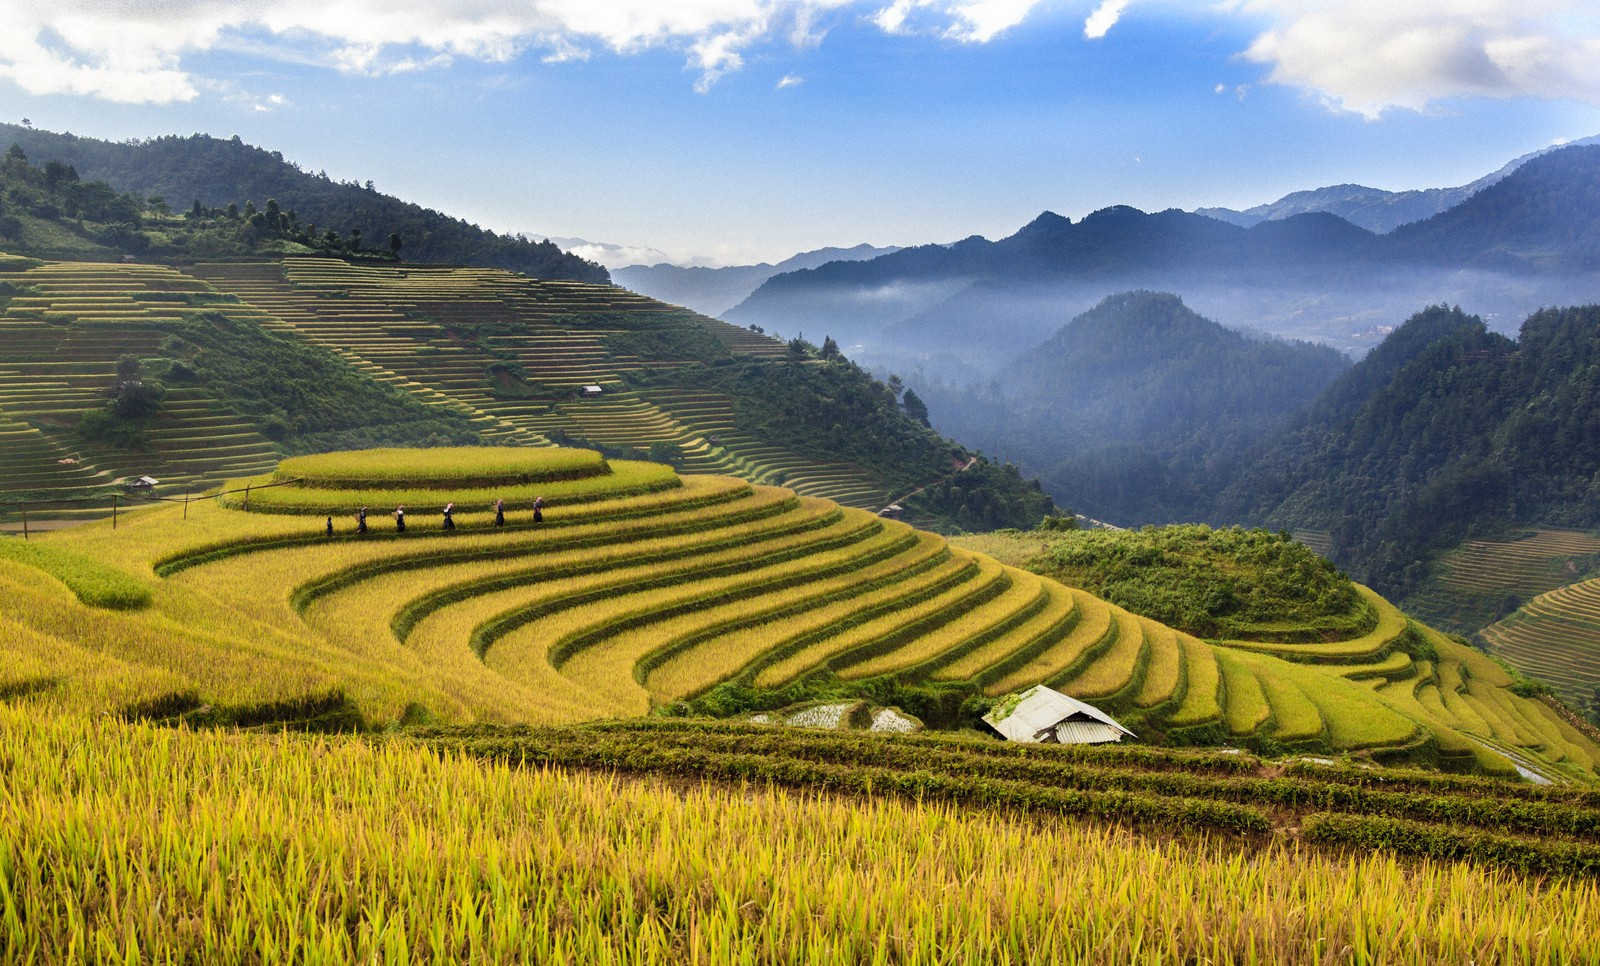 Mu Cang Chai district Vietnam